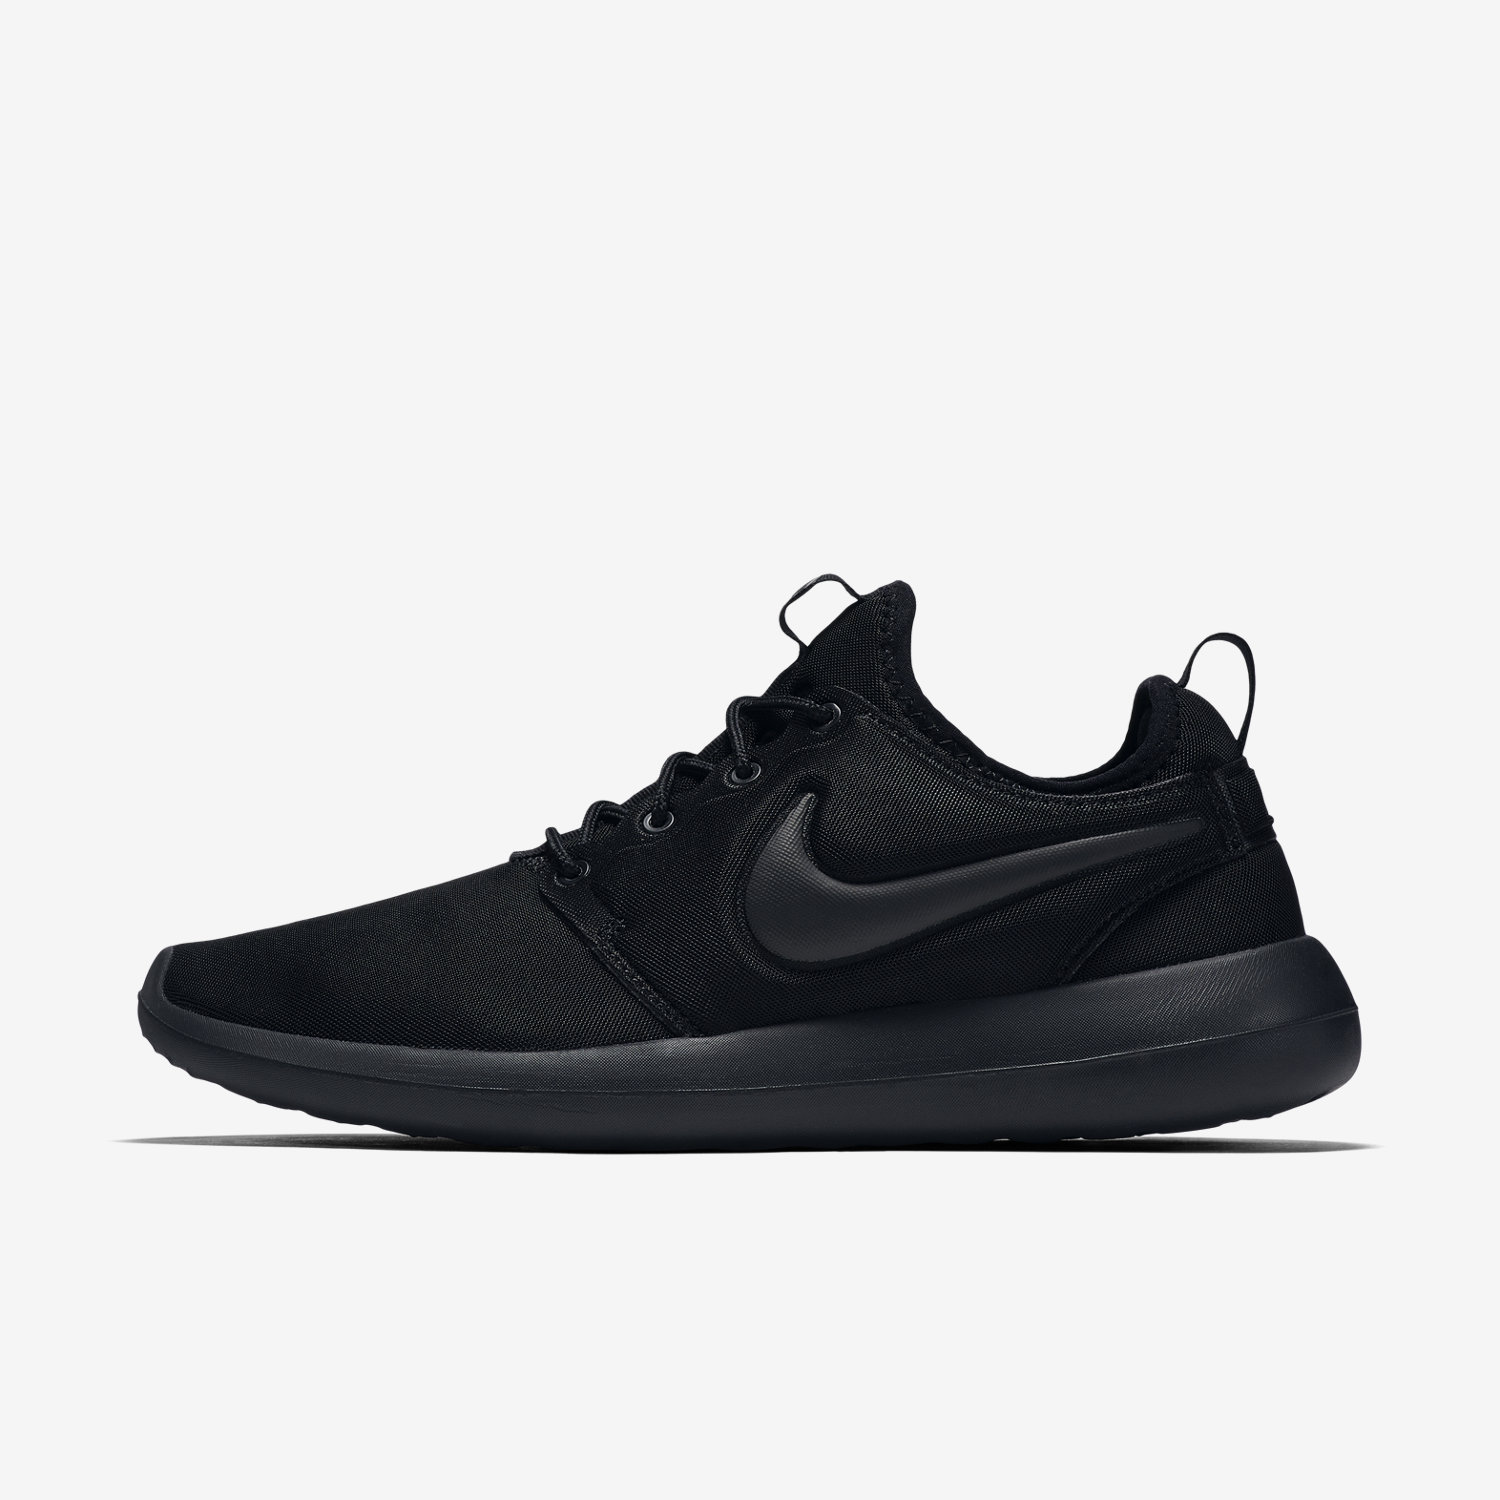 detailed look 5c926 eef58 nike roshe run 2 mens